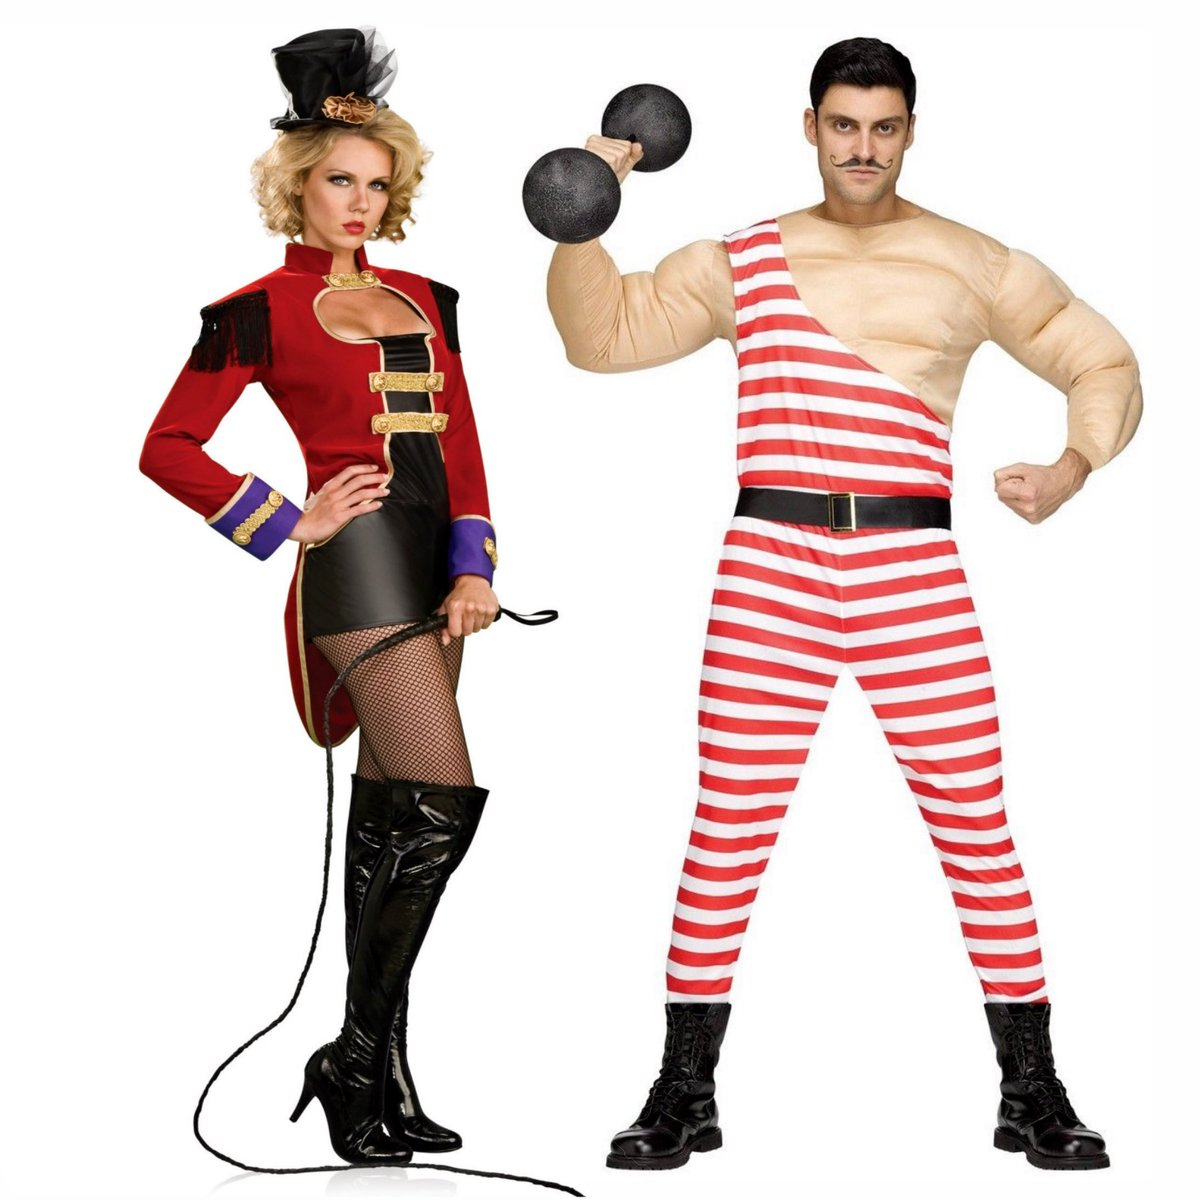 """asylum zone costumes on twitter: """"classic circus looks for couples"""